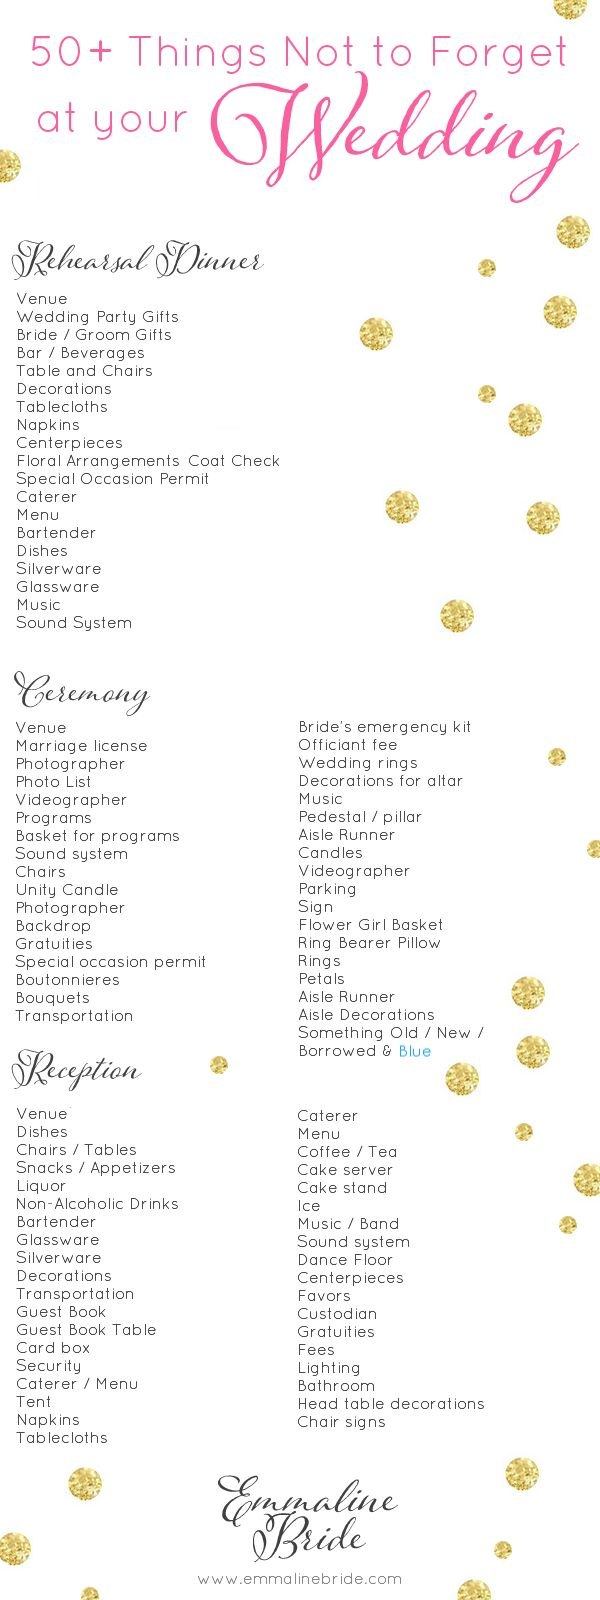 50+ Points To not Overlook at Your Marriage ceremony ceremony (CHECKLIST)